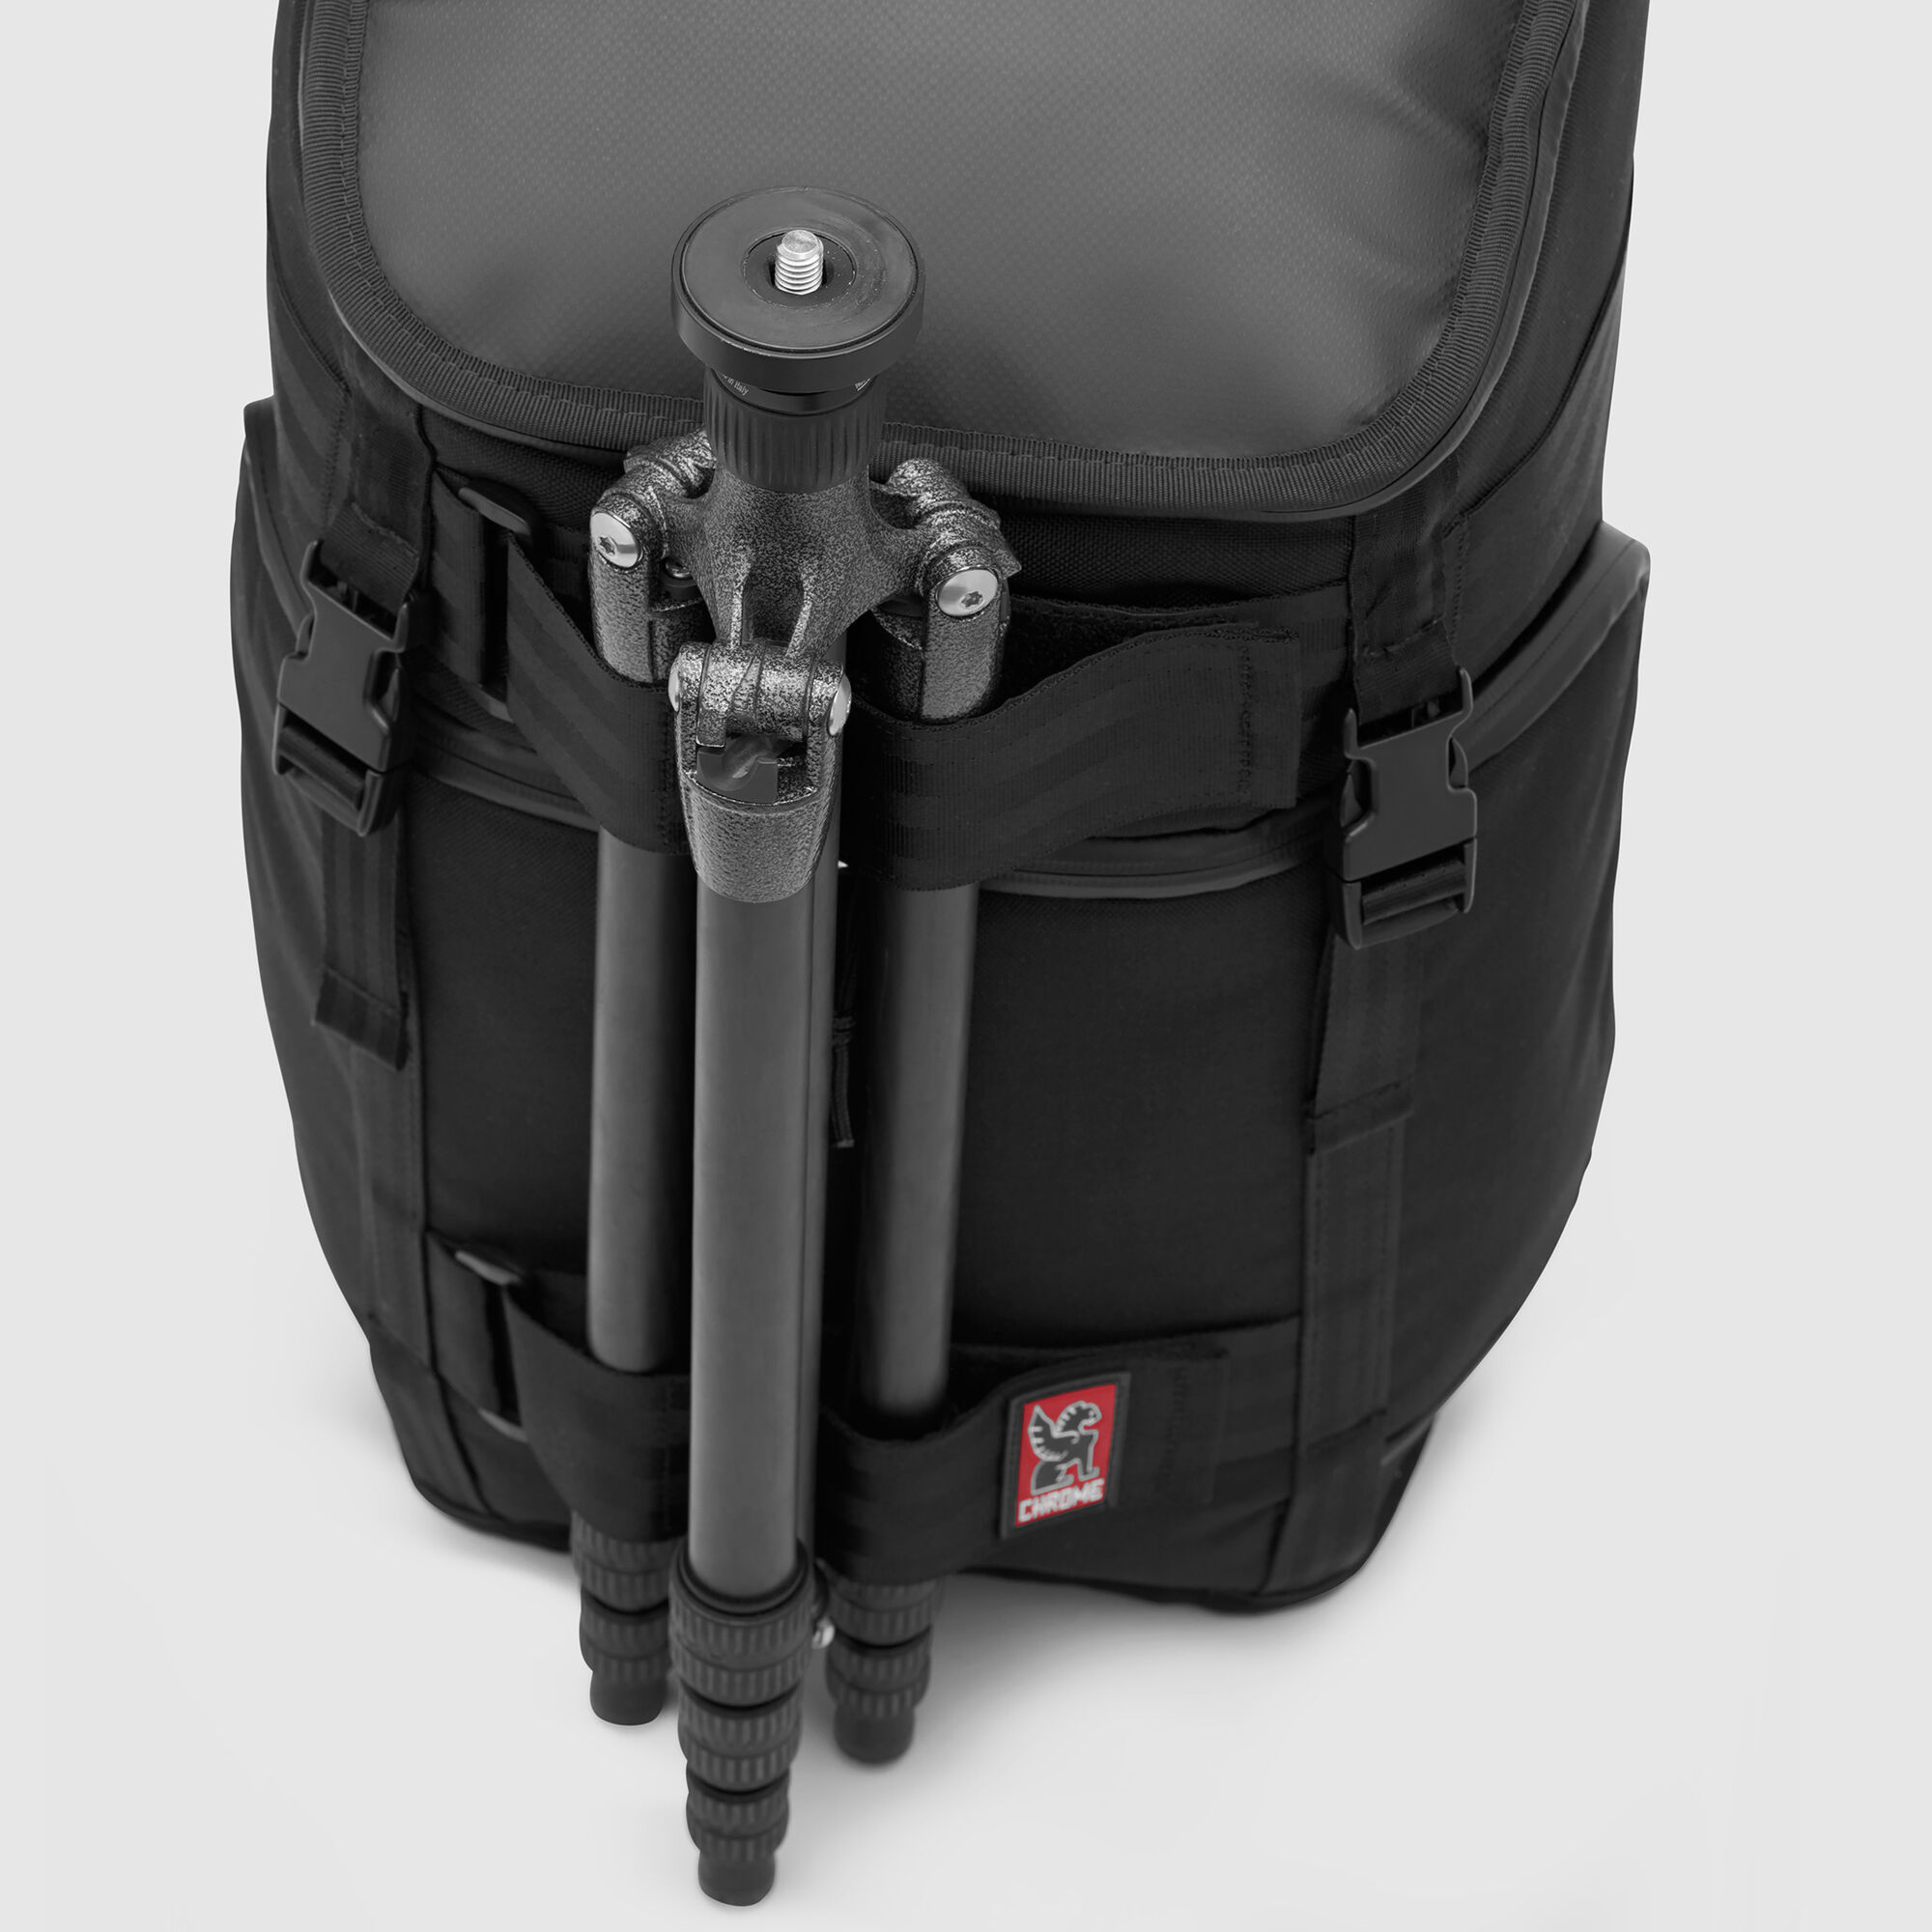 Niko Pack Backpack In Black Small View